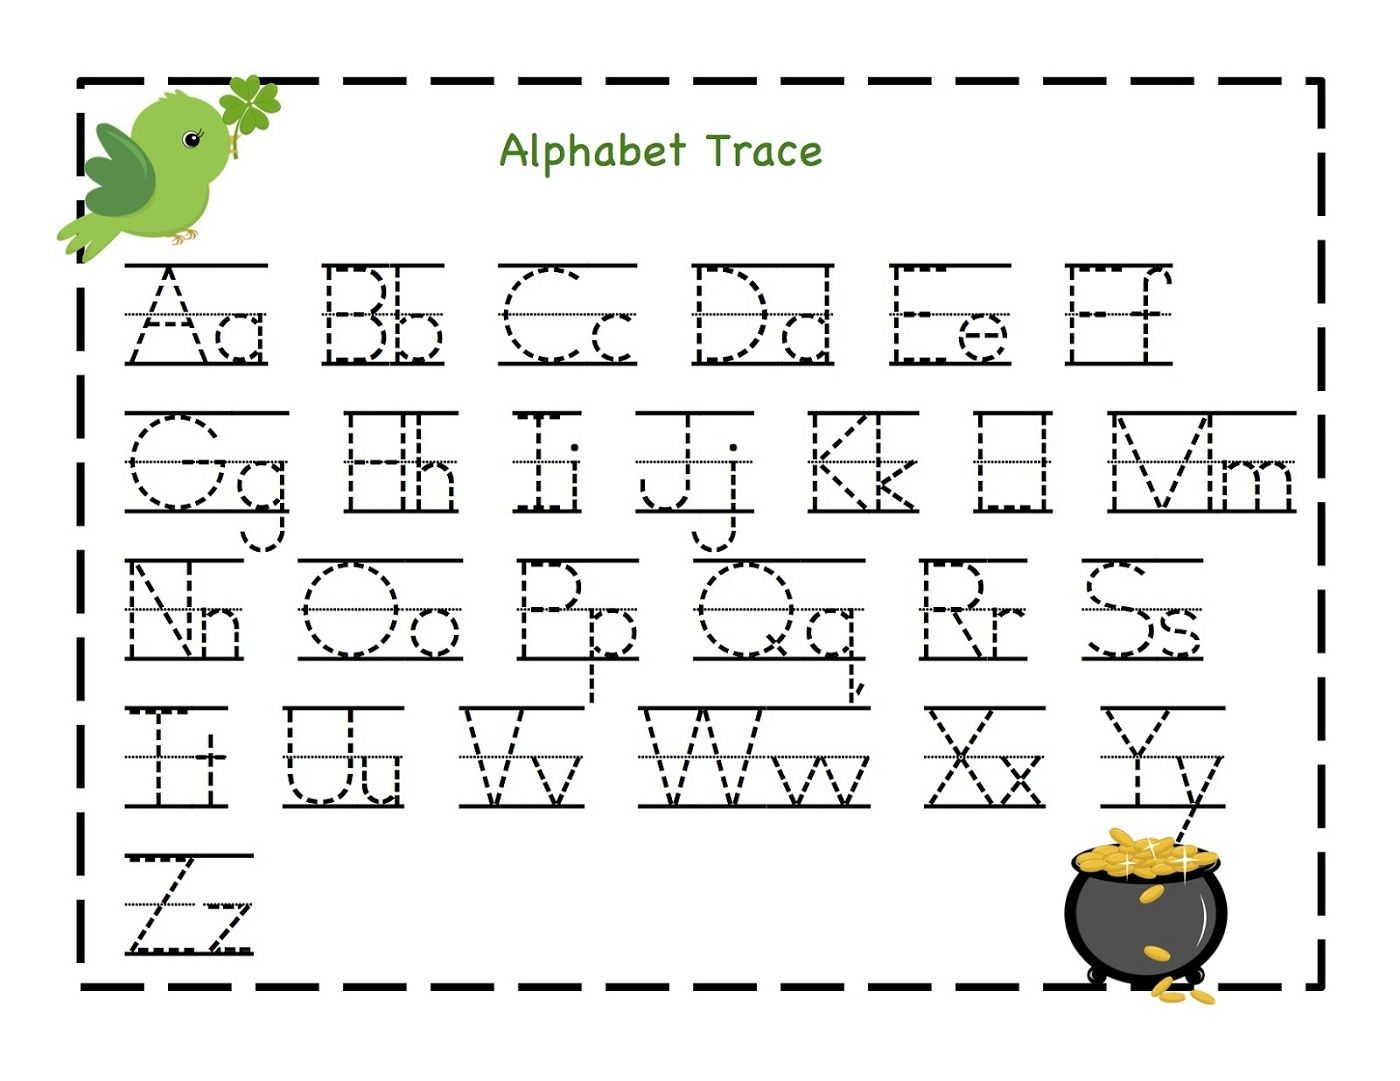 Worksheets Free Printable Letter Recognition Worksheets pin by michelle houston on schoolwork for taj and bre pinterest help your kids learning abc in fun way these traceable letter worksheets to print will learn letters ea